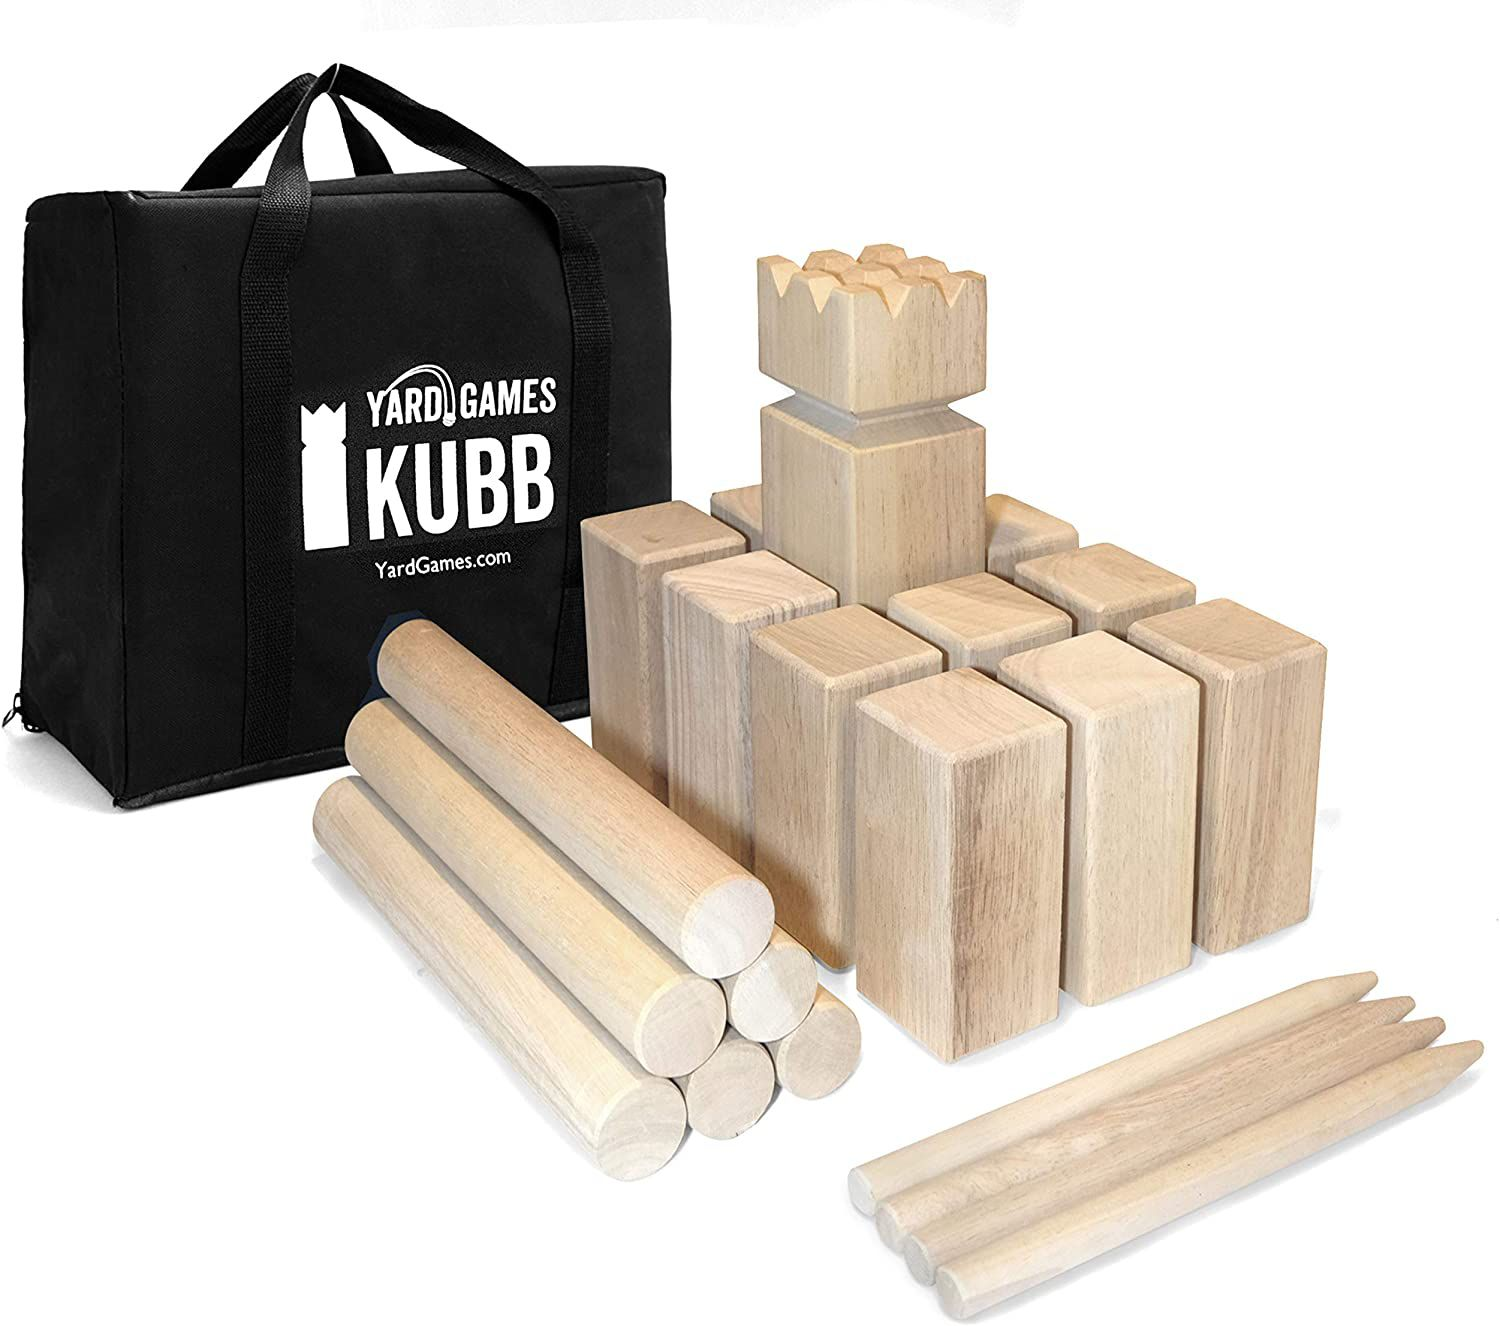 Yard Games Kubb Regulation Size Outdoor Tossing Game with Carrying Case